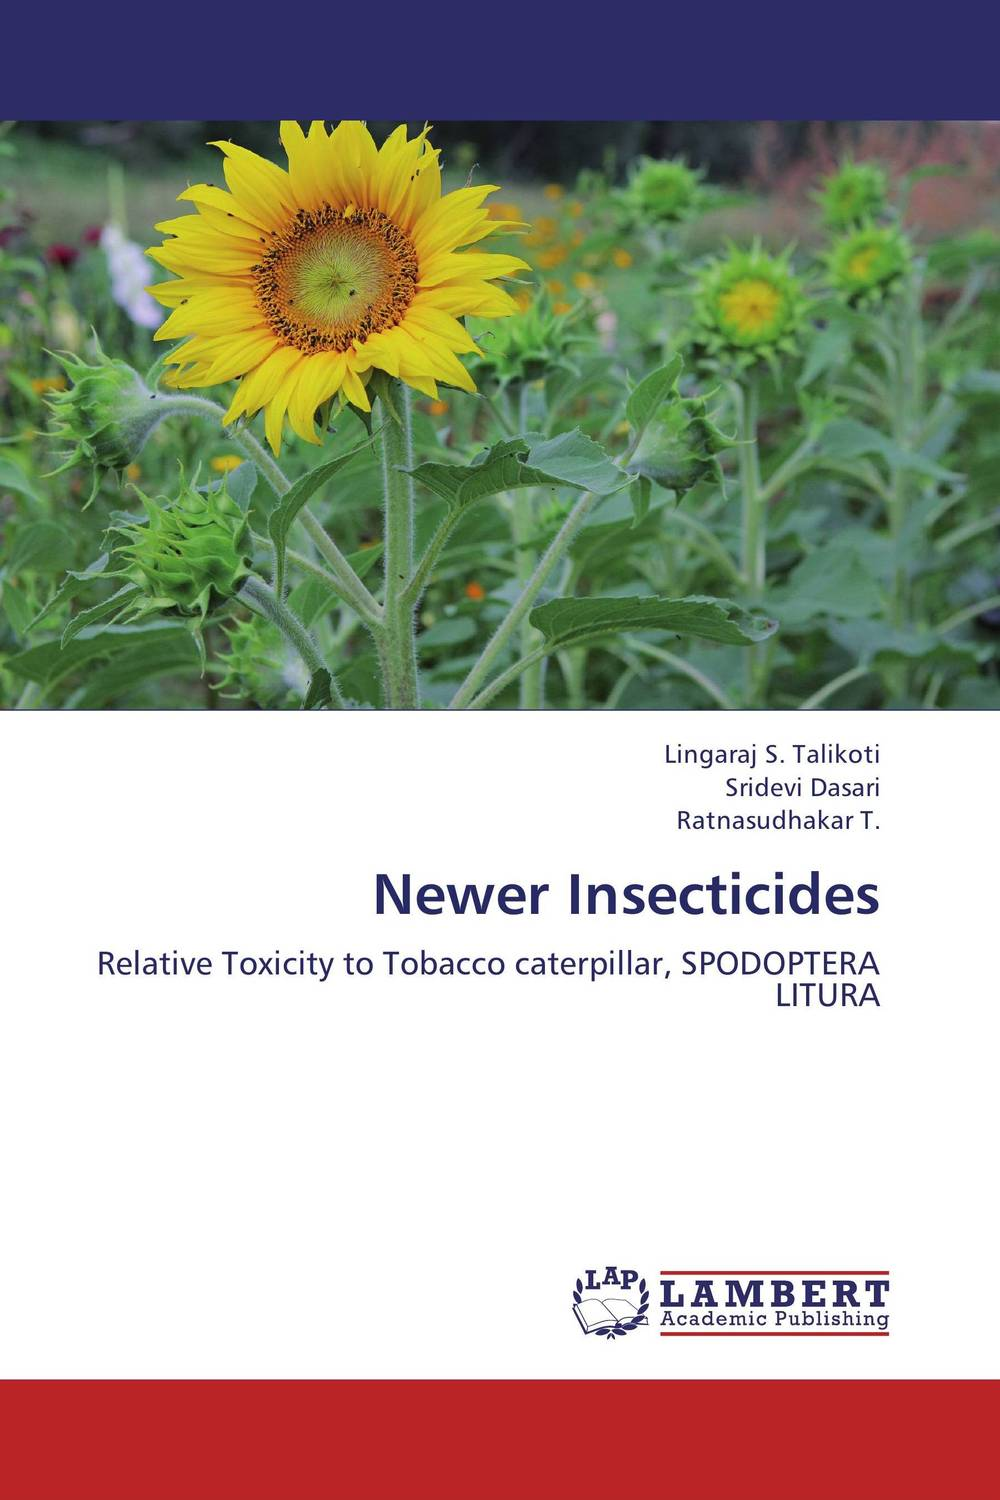 Newer Insecticides insecticides resistance